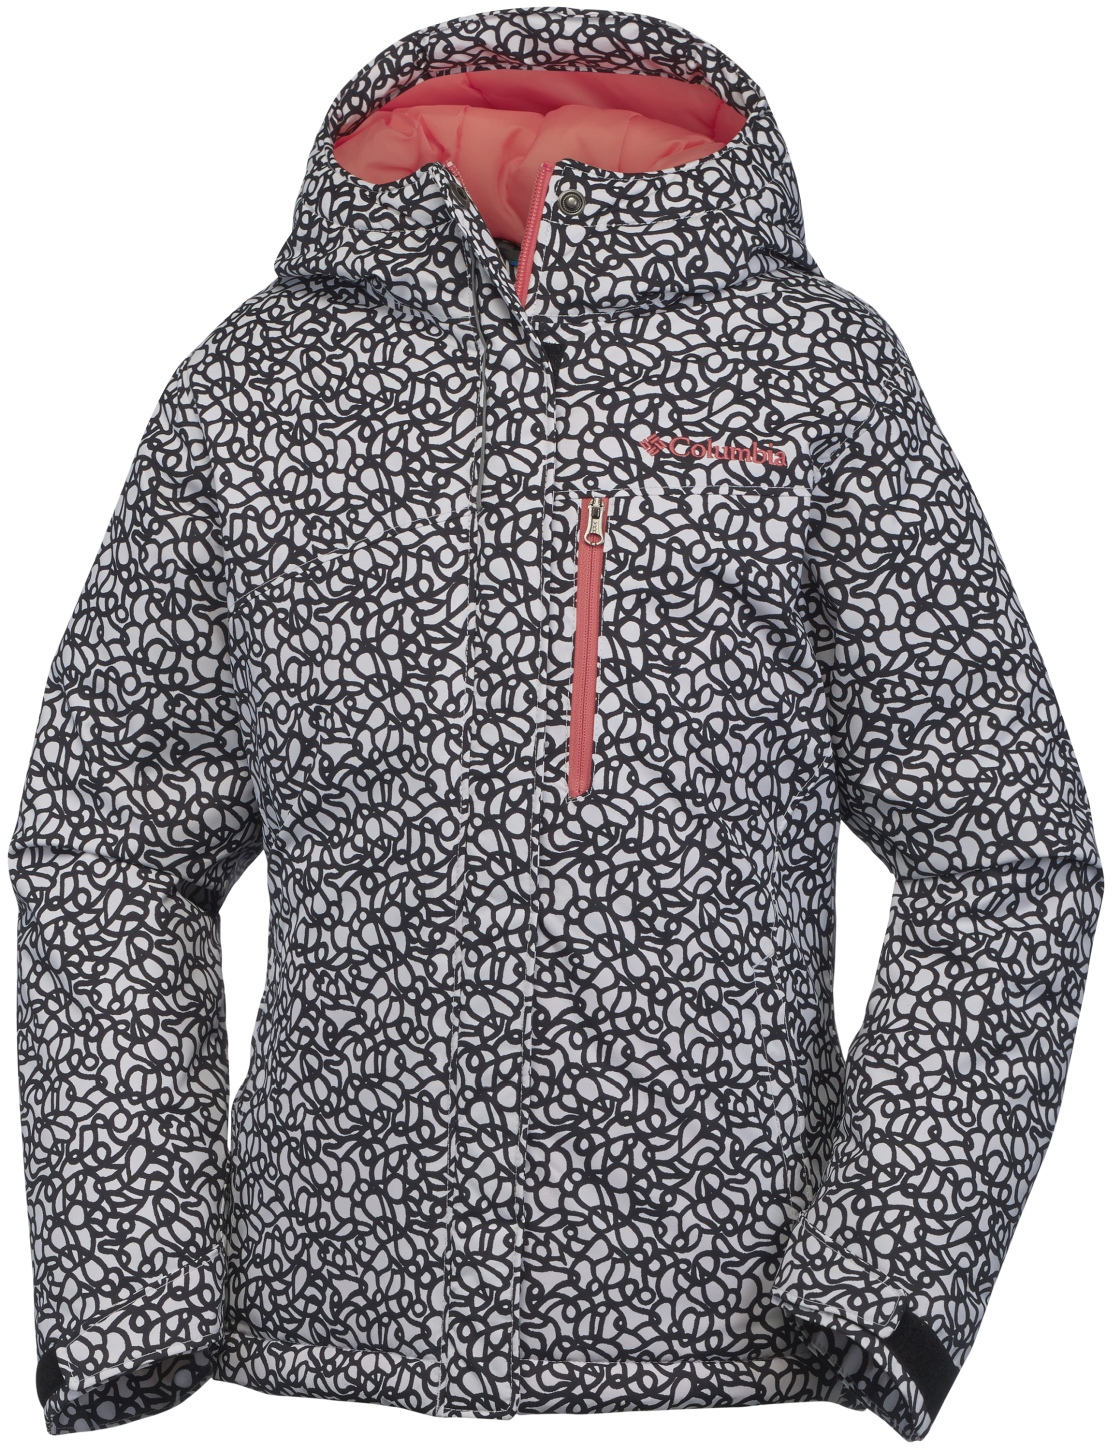 Columbia Girls' Alpine Free Fall Ski Jacket Black Print-30